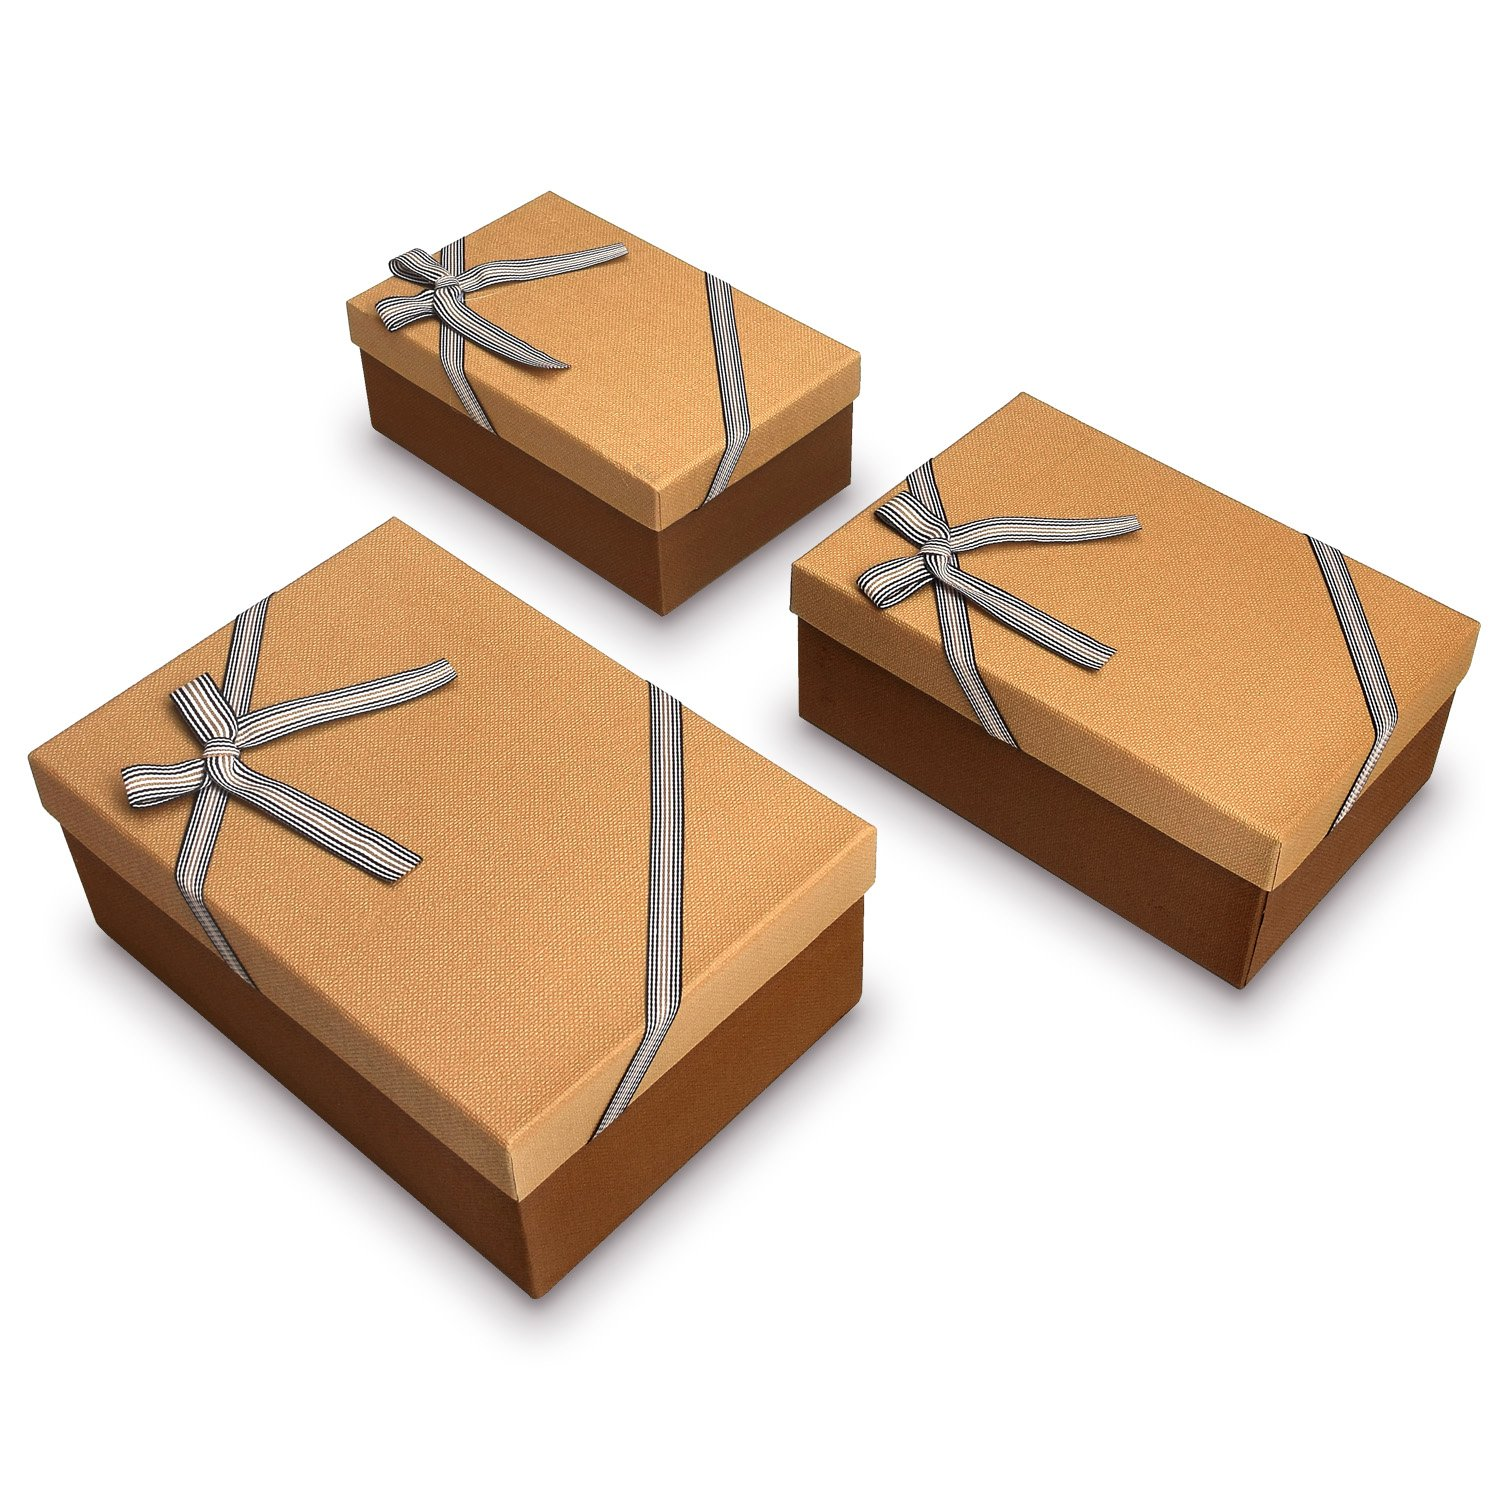 Elegant Decorative Nesting Gift Boxes, A Set of 3, Brown Color with A Bow tie